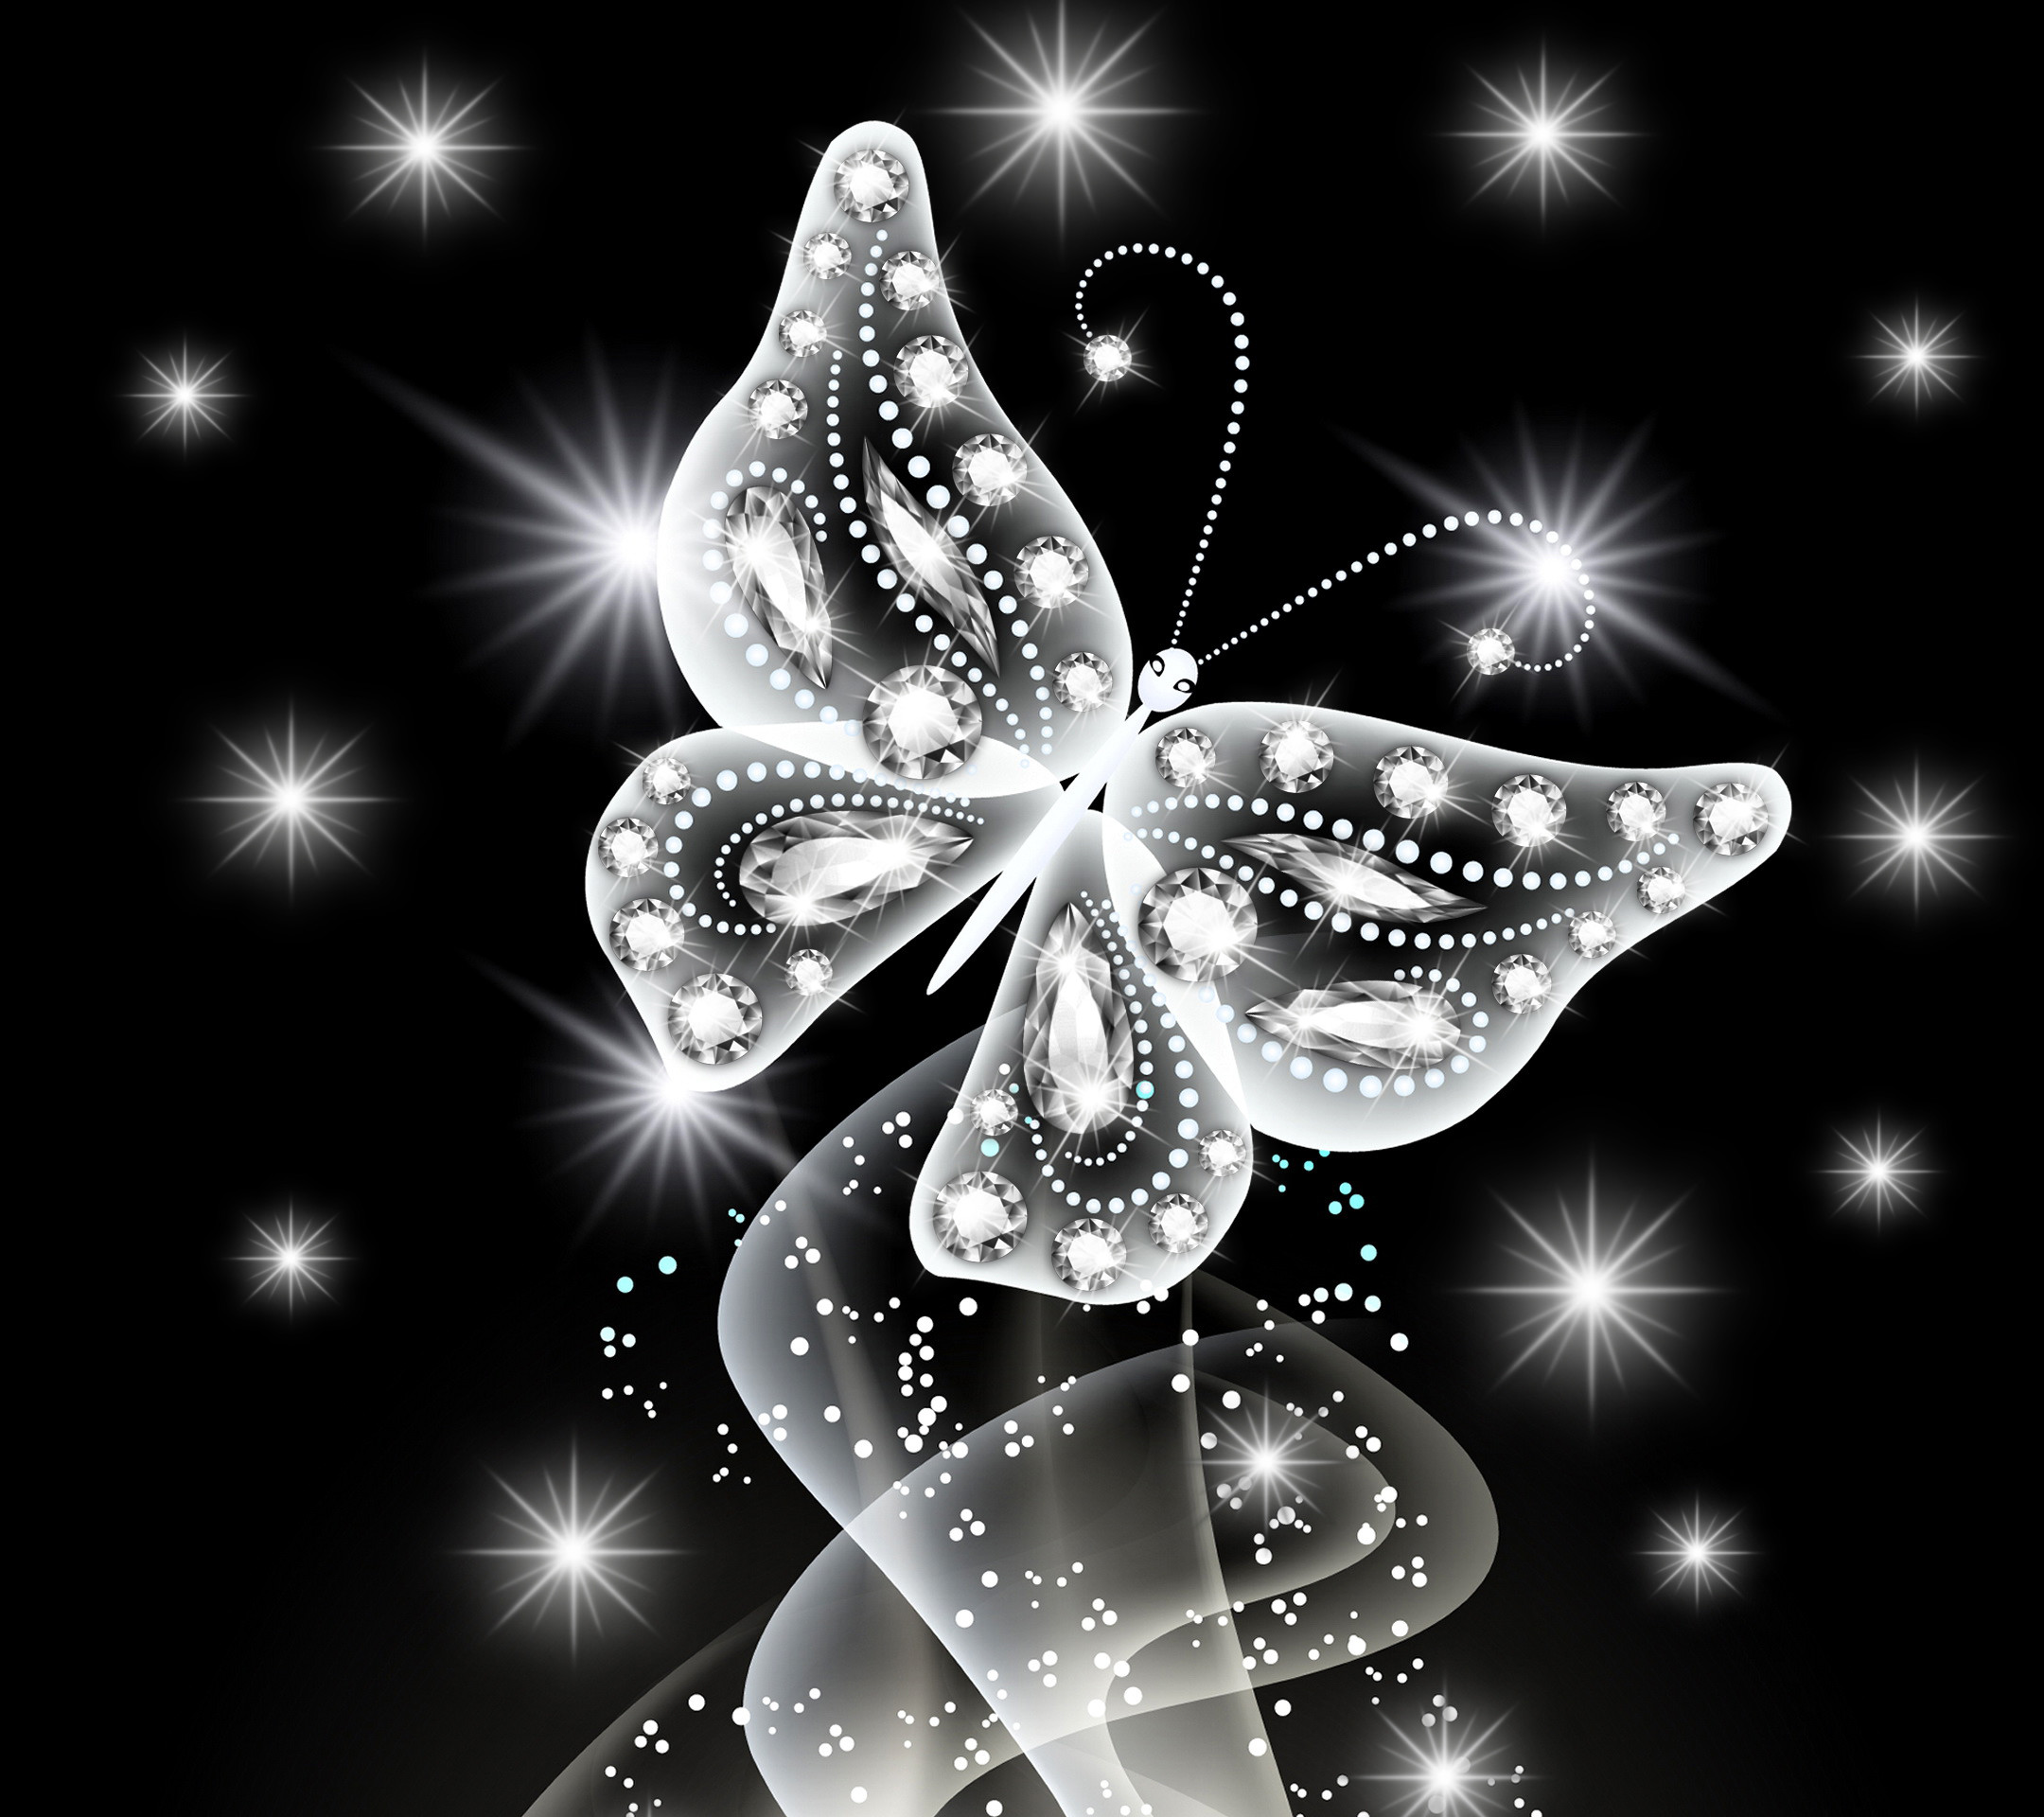 2160x1920 Wallpaper neon, butterfly, abstract, white, diamonds, jem, sparkle .